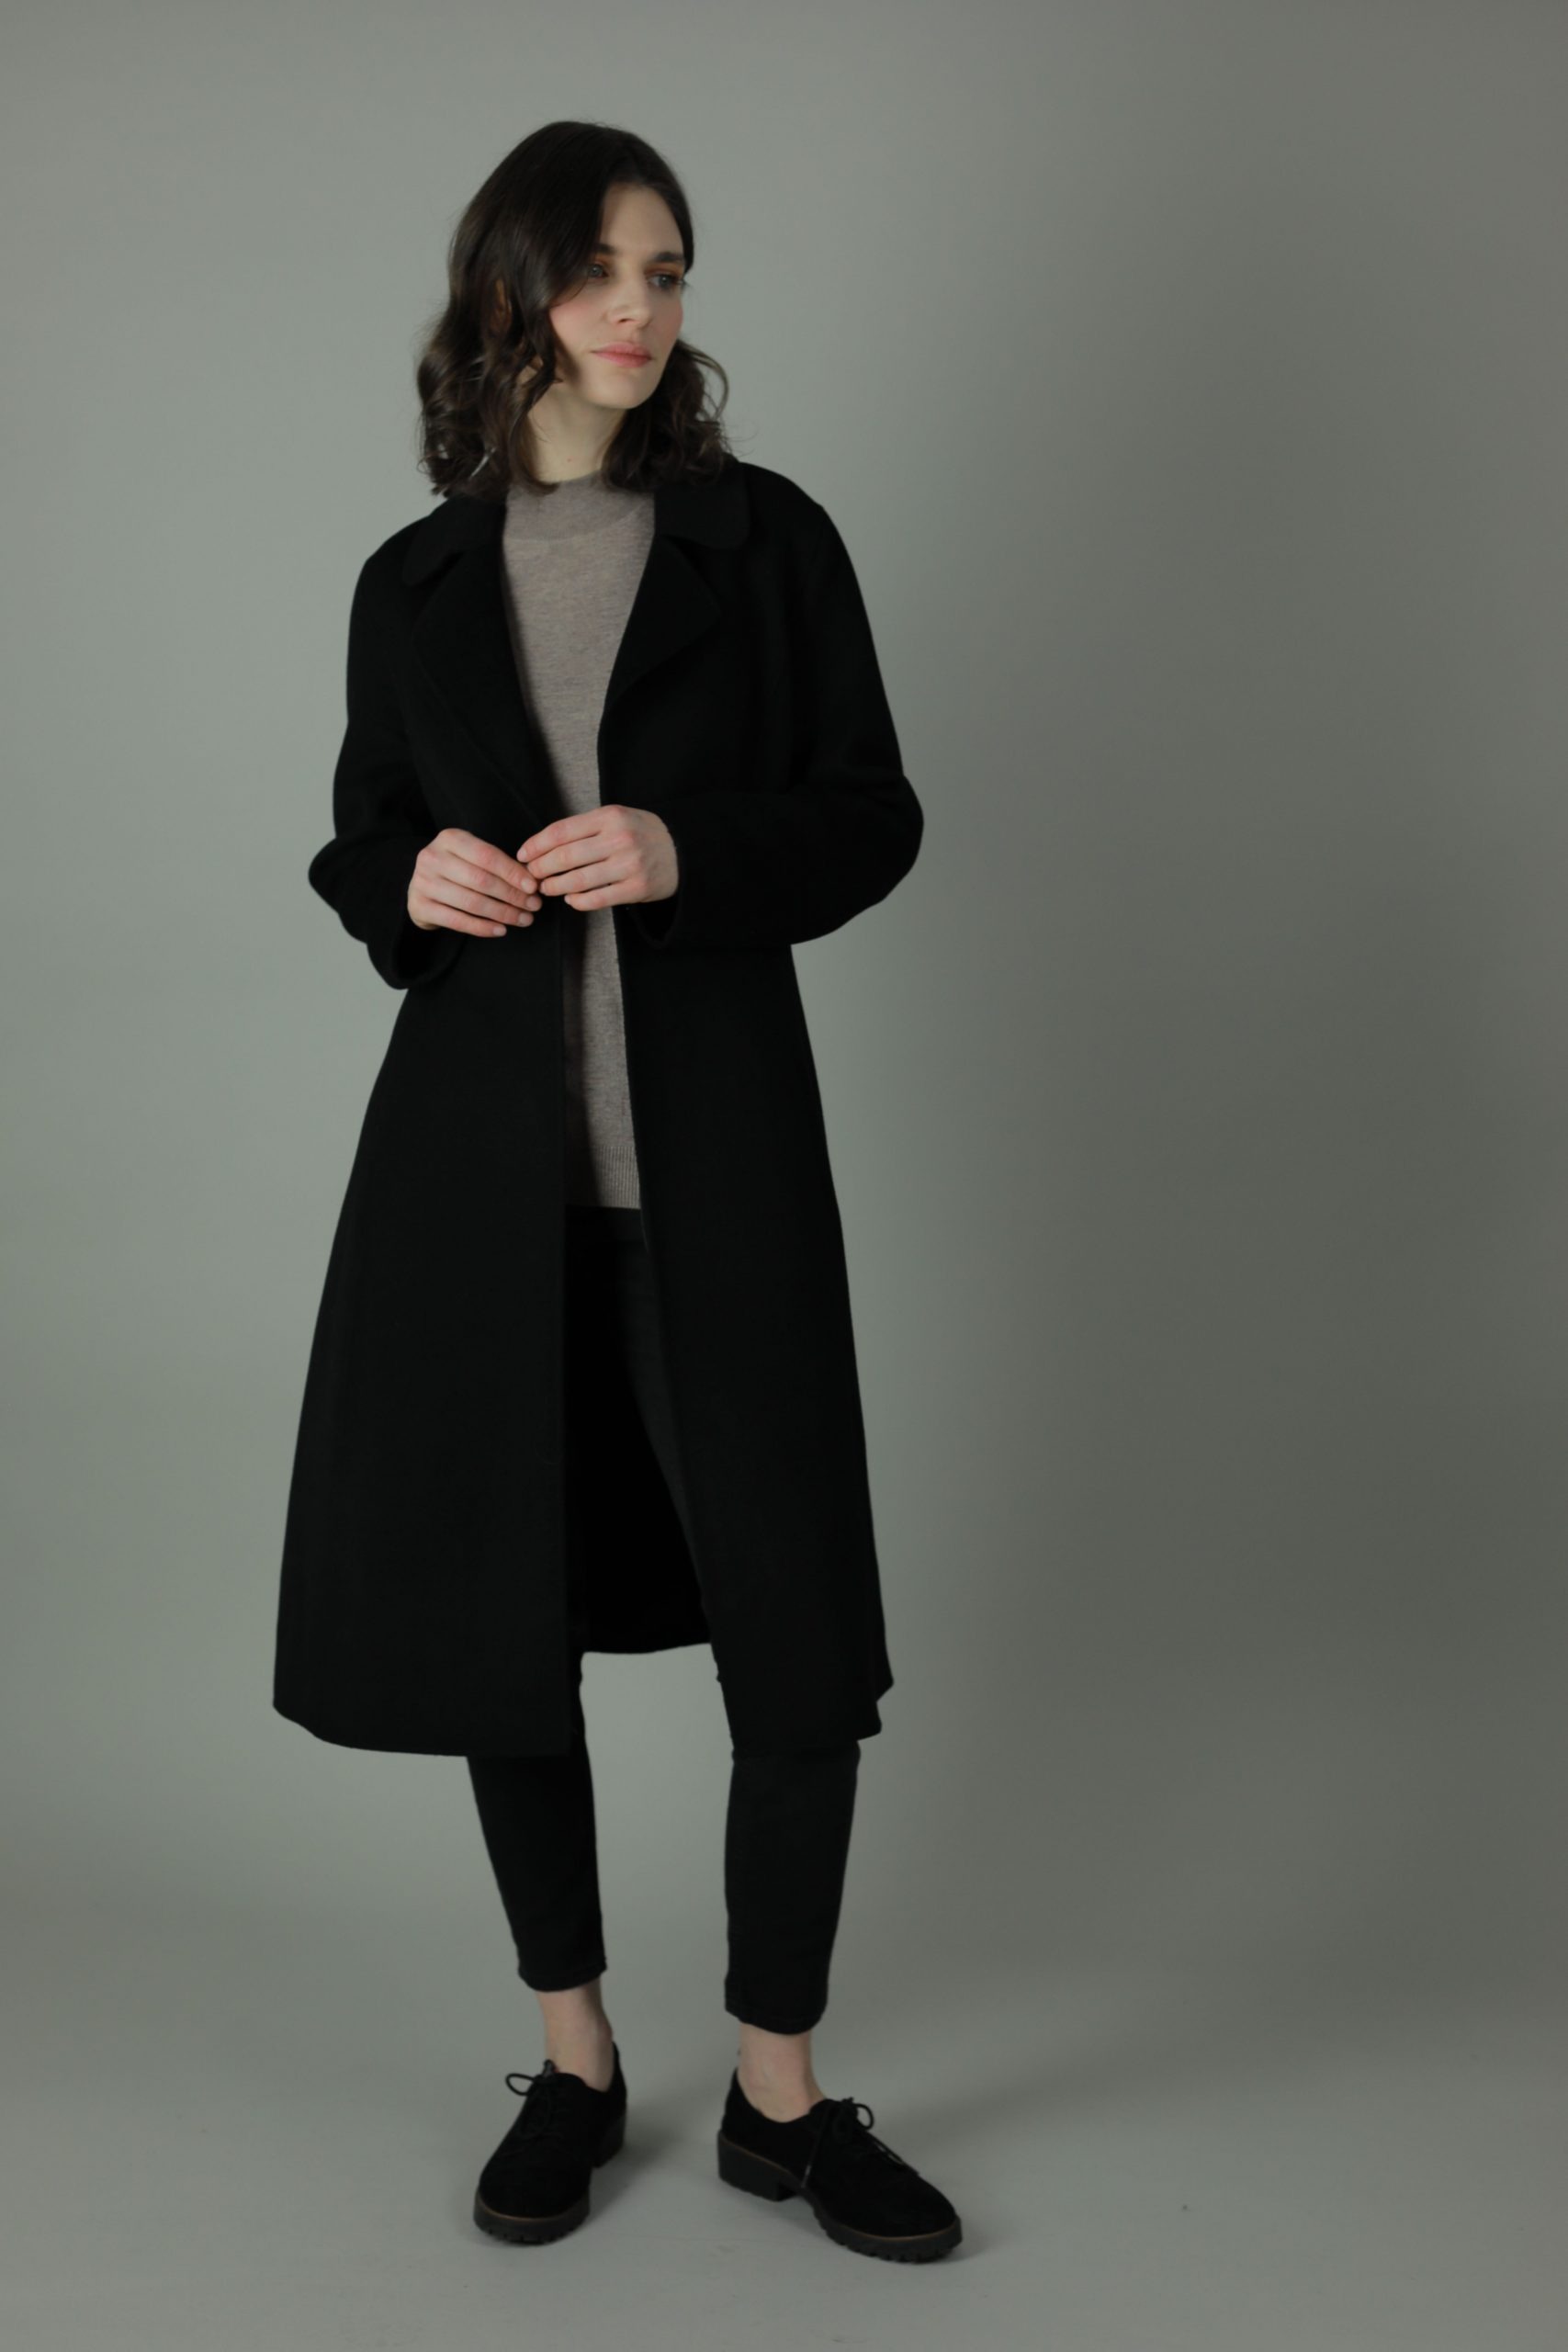 Luxury and warmth, the Cora Cashmere double-face coat is a non-compromiser. Any season, any occasion this iconic coat features 100% cashmere, collar ans waist belt for the perfect silhouette style.